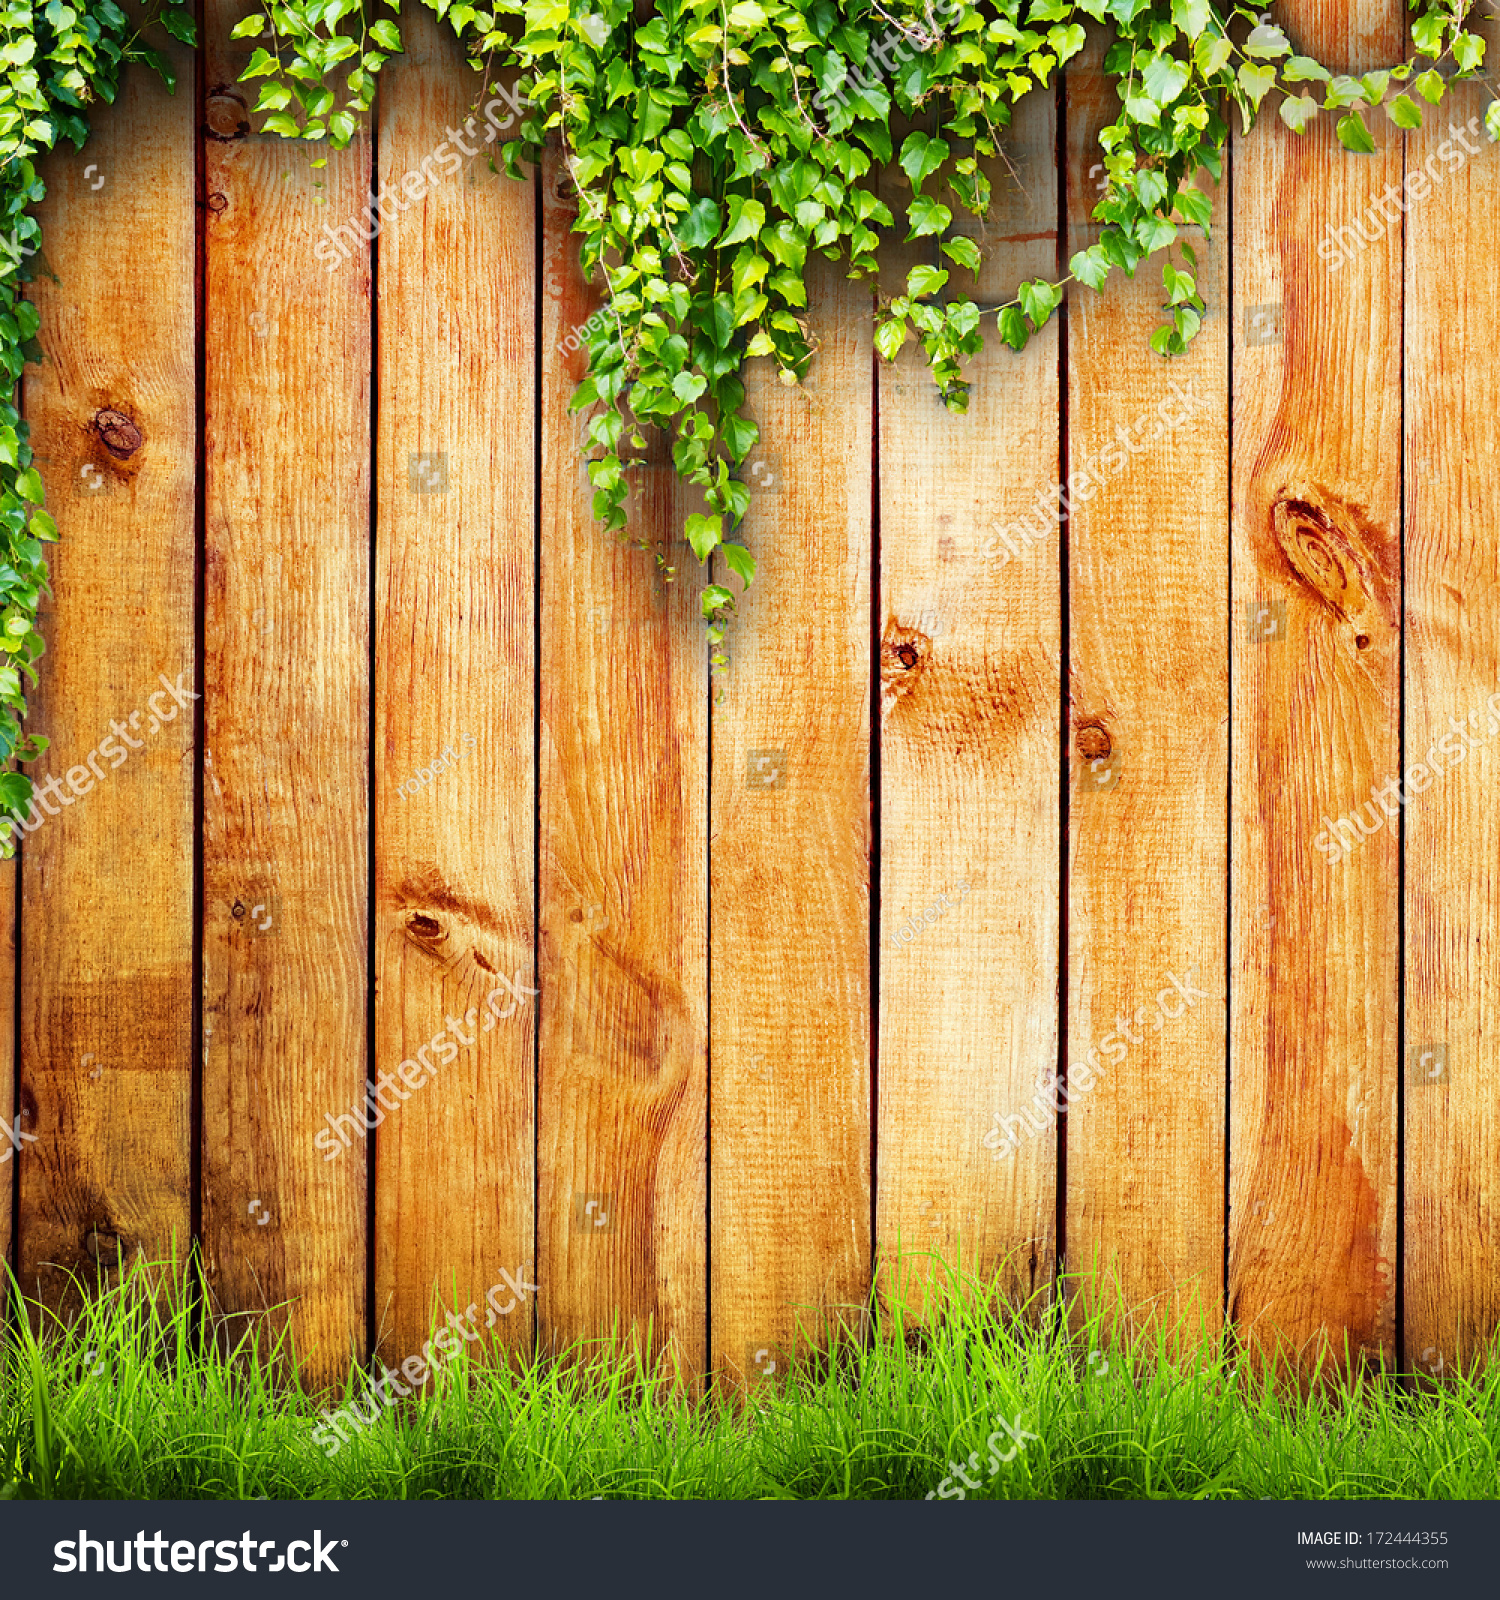 Spring Green Leaves And Flowers Background With Plants: Fresh Spring Green Grass And Leaf Plant… Stock Photo